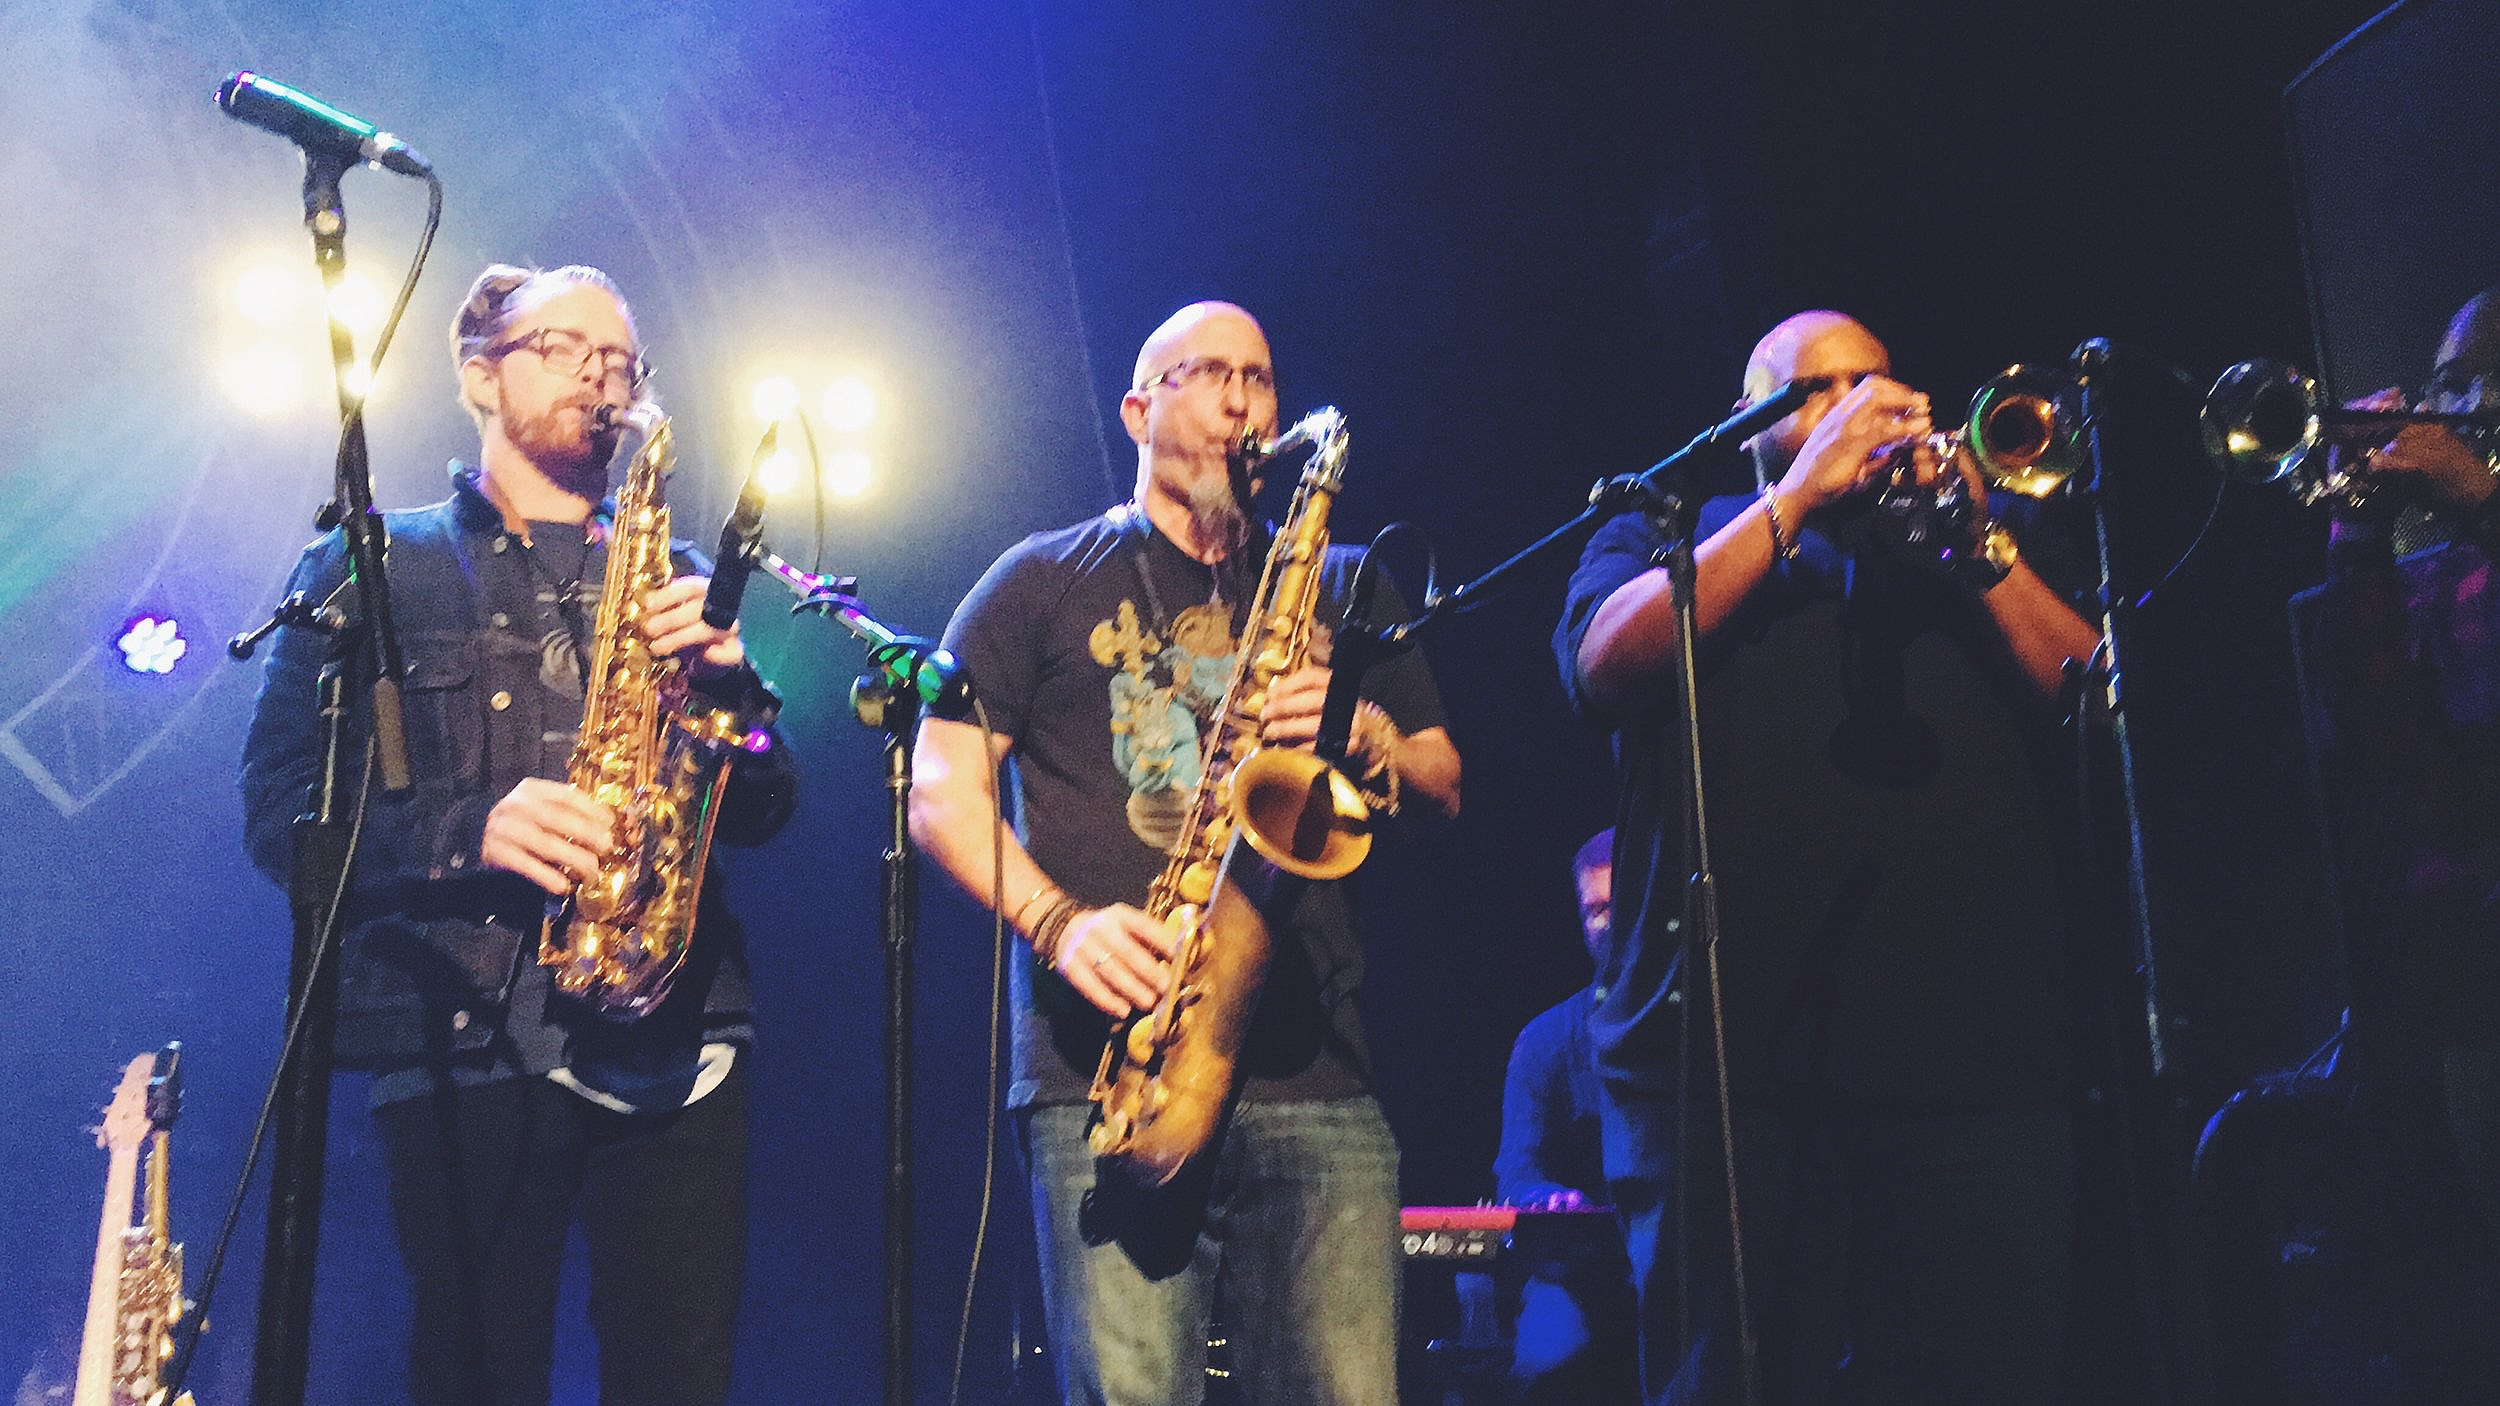 Jack Sheehan, Jeff Coffin, Rashawn Ross & Brandon Lewis at Jefferson Theater Charlottesville, VA - DMB AfterParty 12/14/2019